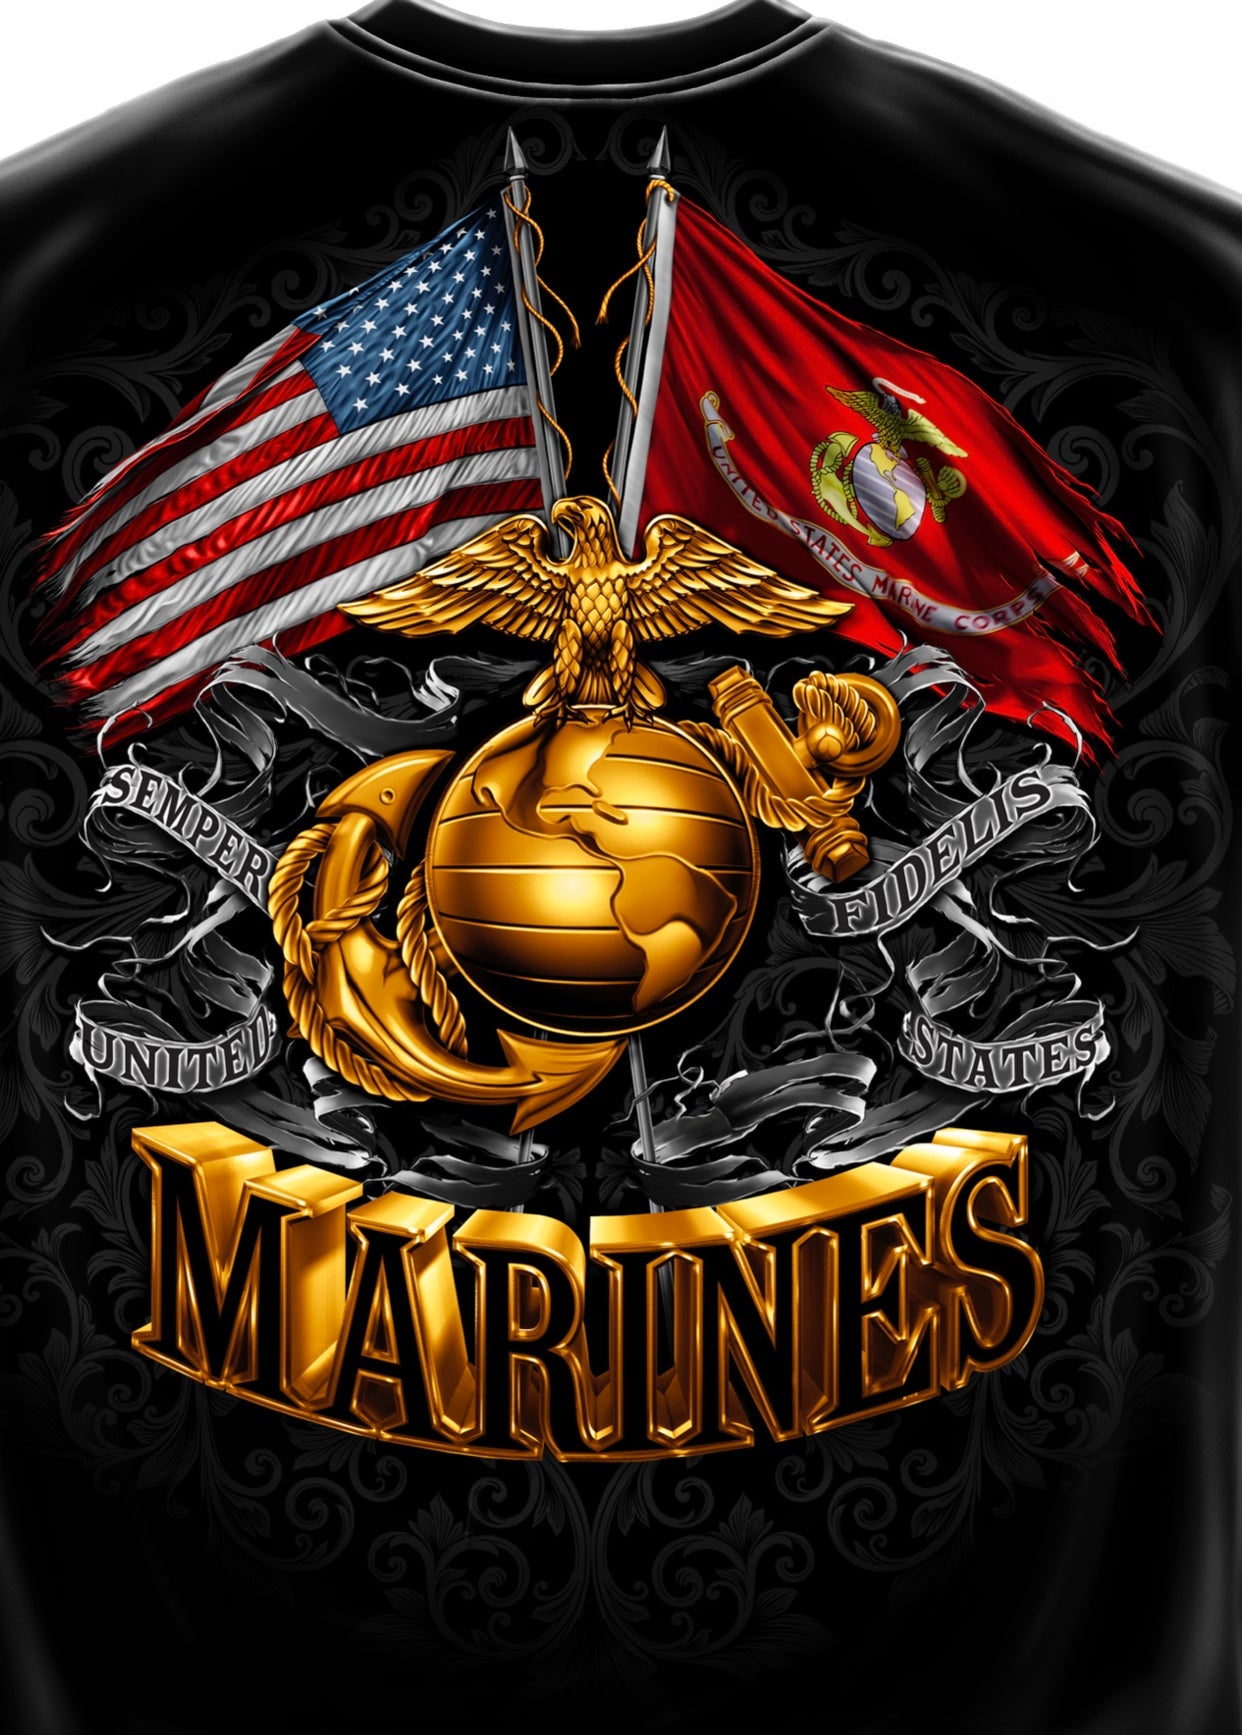 Marine 2 Flag Foil T-Shirt - The Wall Kids, Inc.